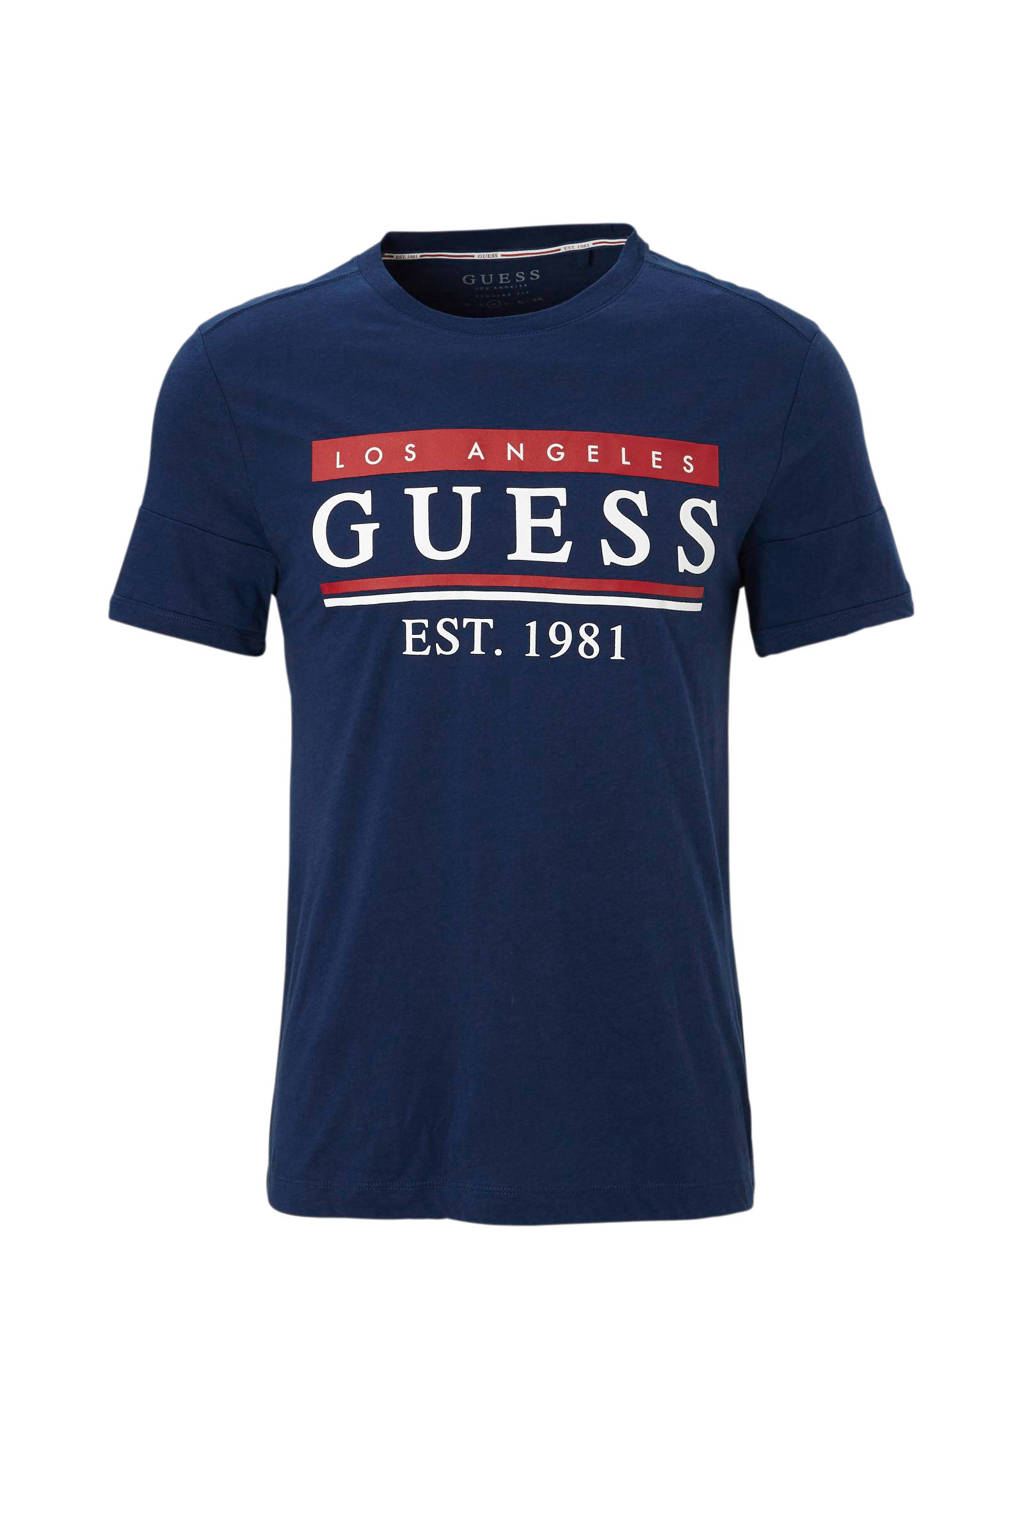 GUESS T-shirt, Donkerblauw